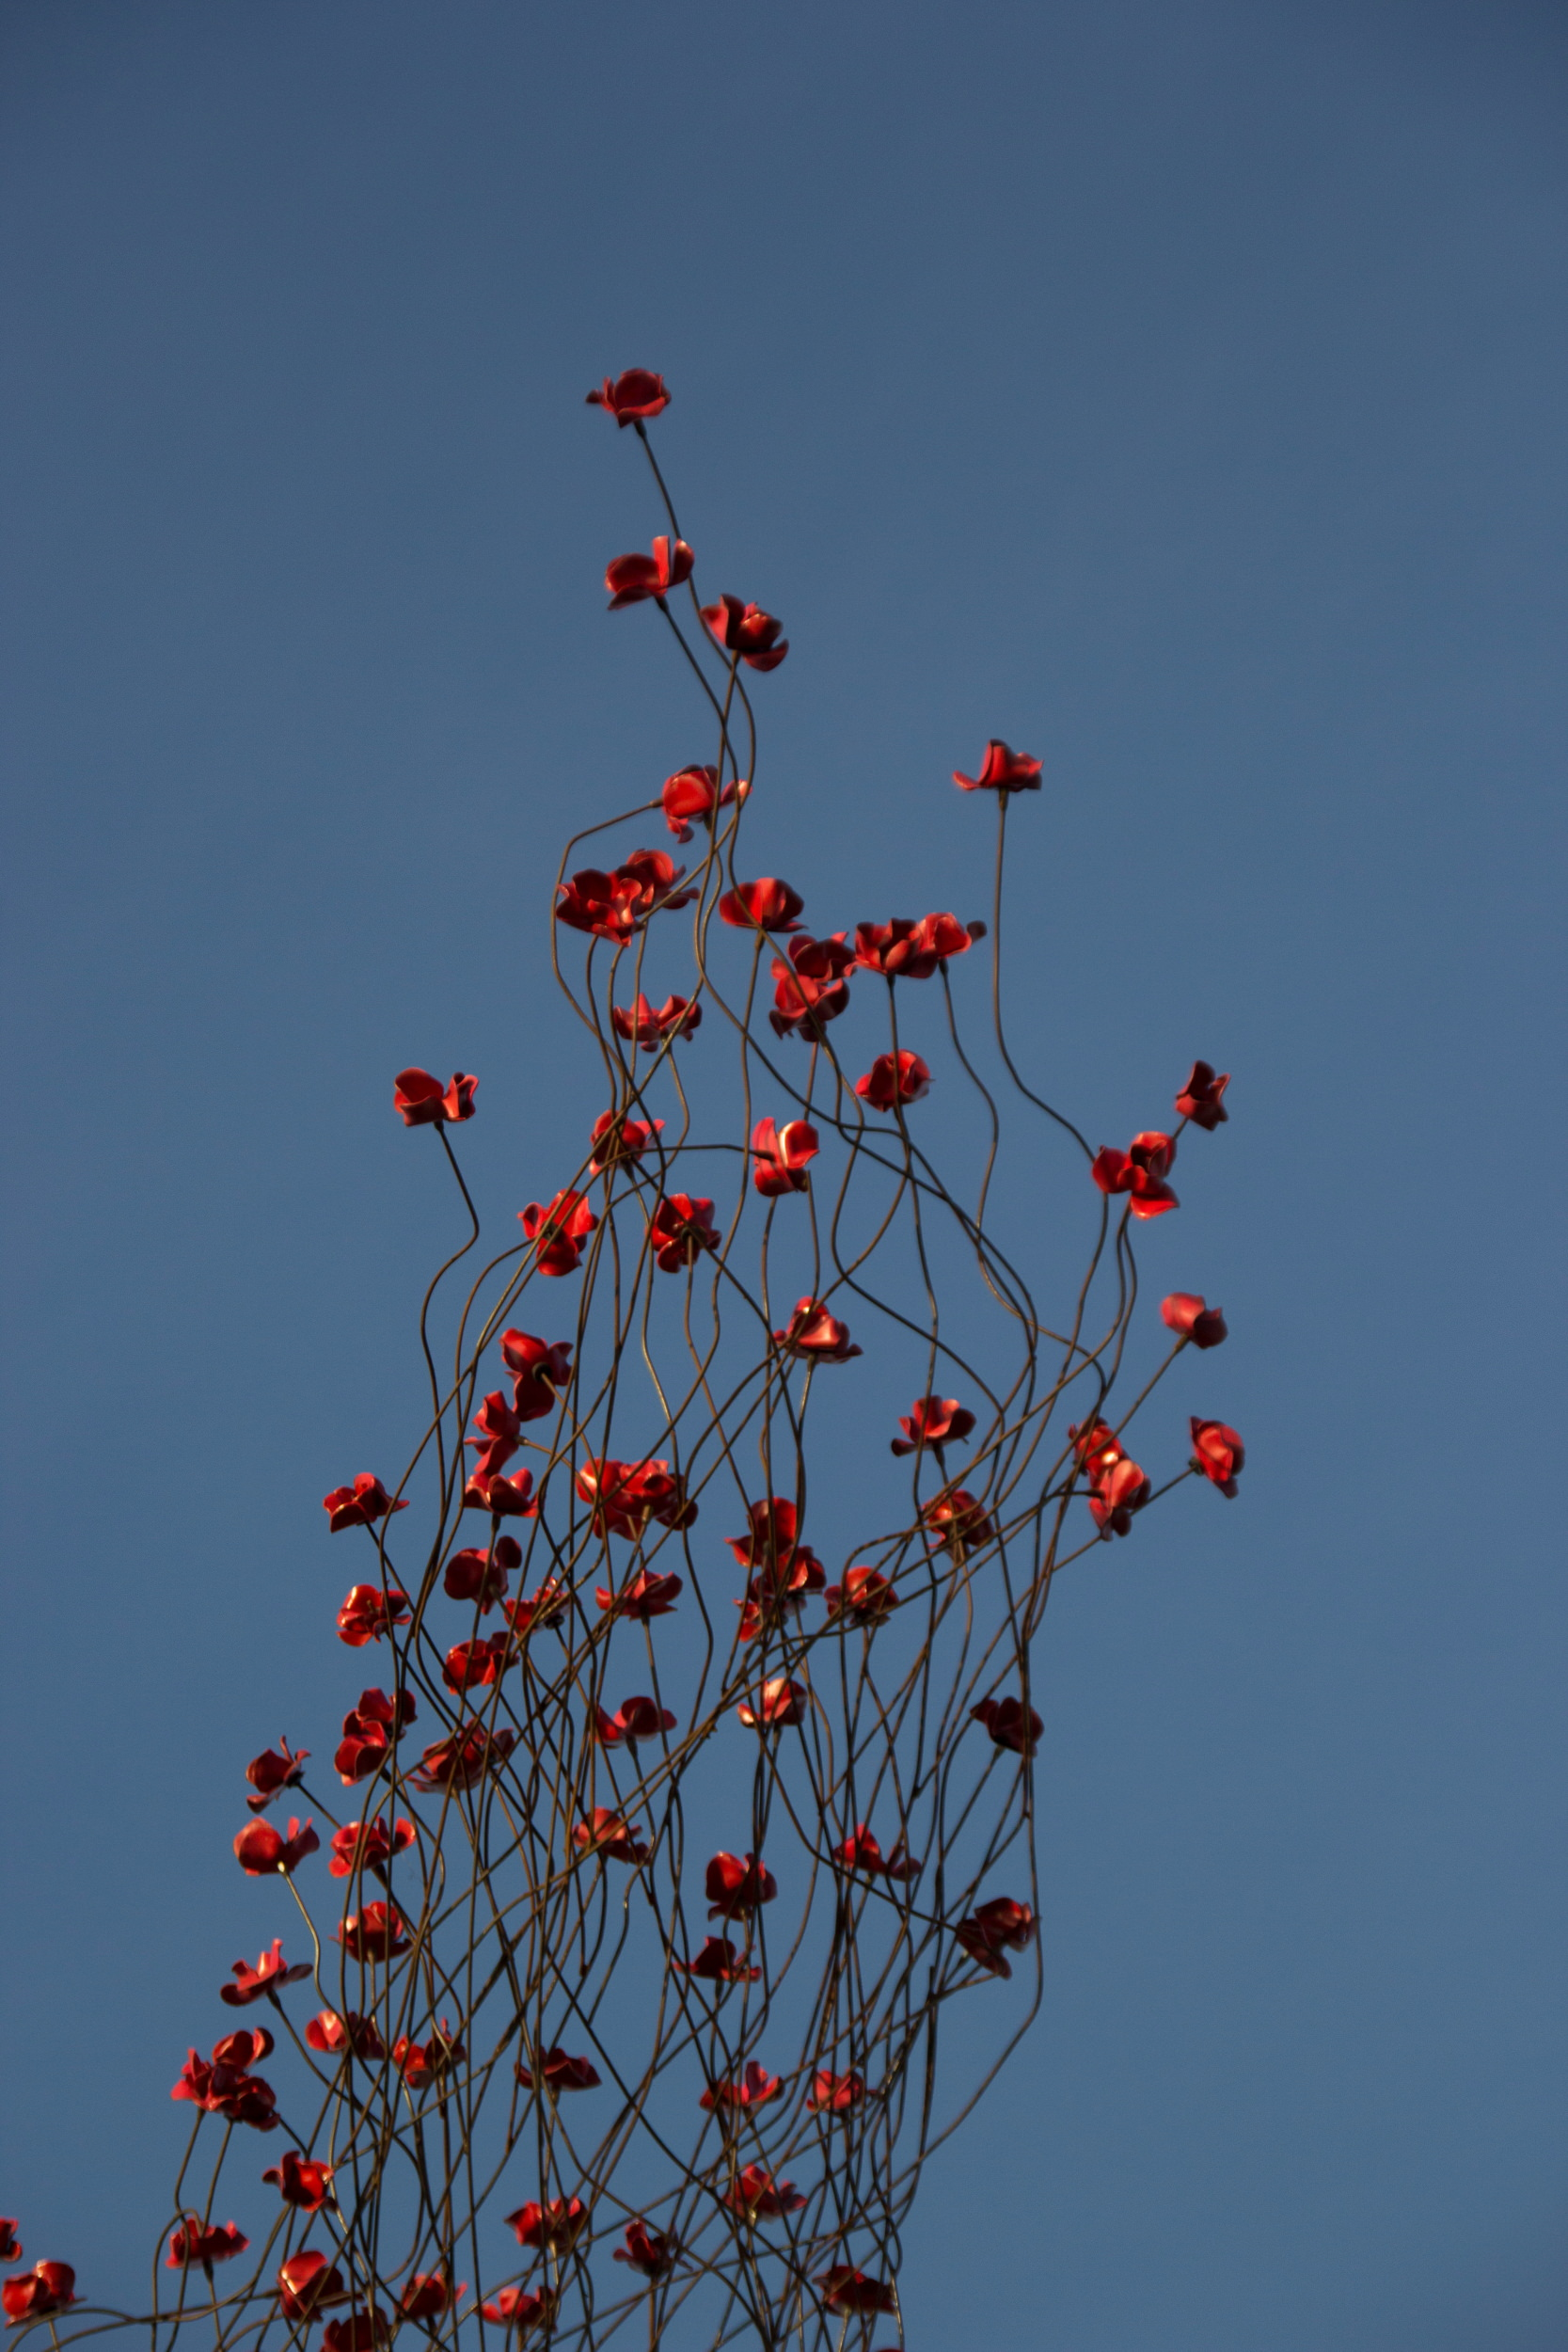 Poppies tour: poppies wave